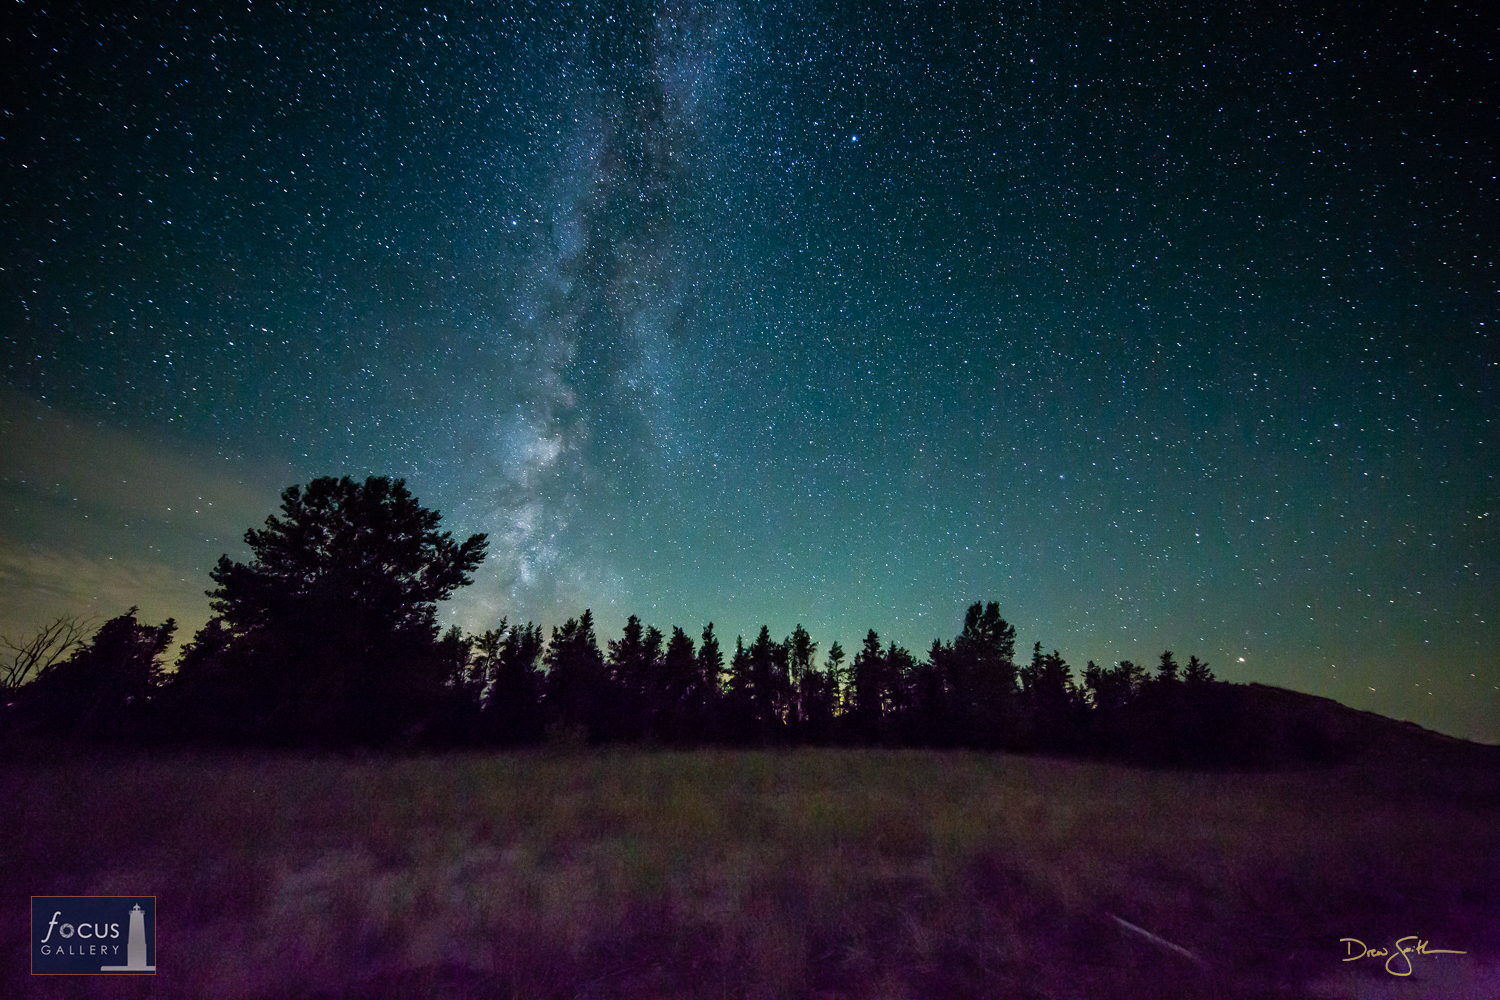 Photo © Drew Smith A sky full of stars and the Milky Way shine over the wooded dunes at Glen Haven on Sleeping Bear Point....